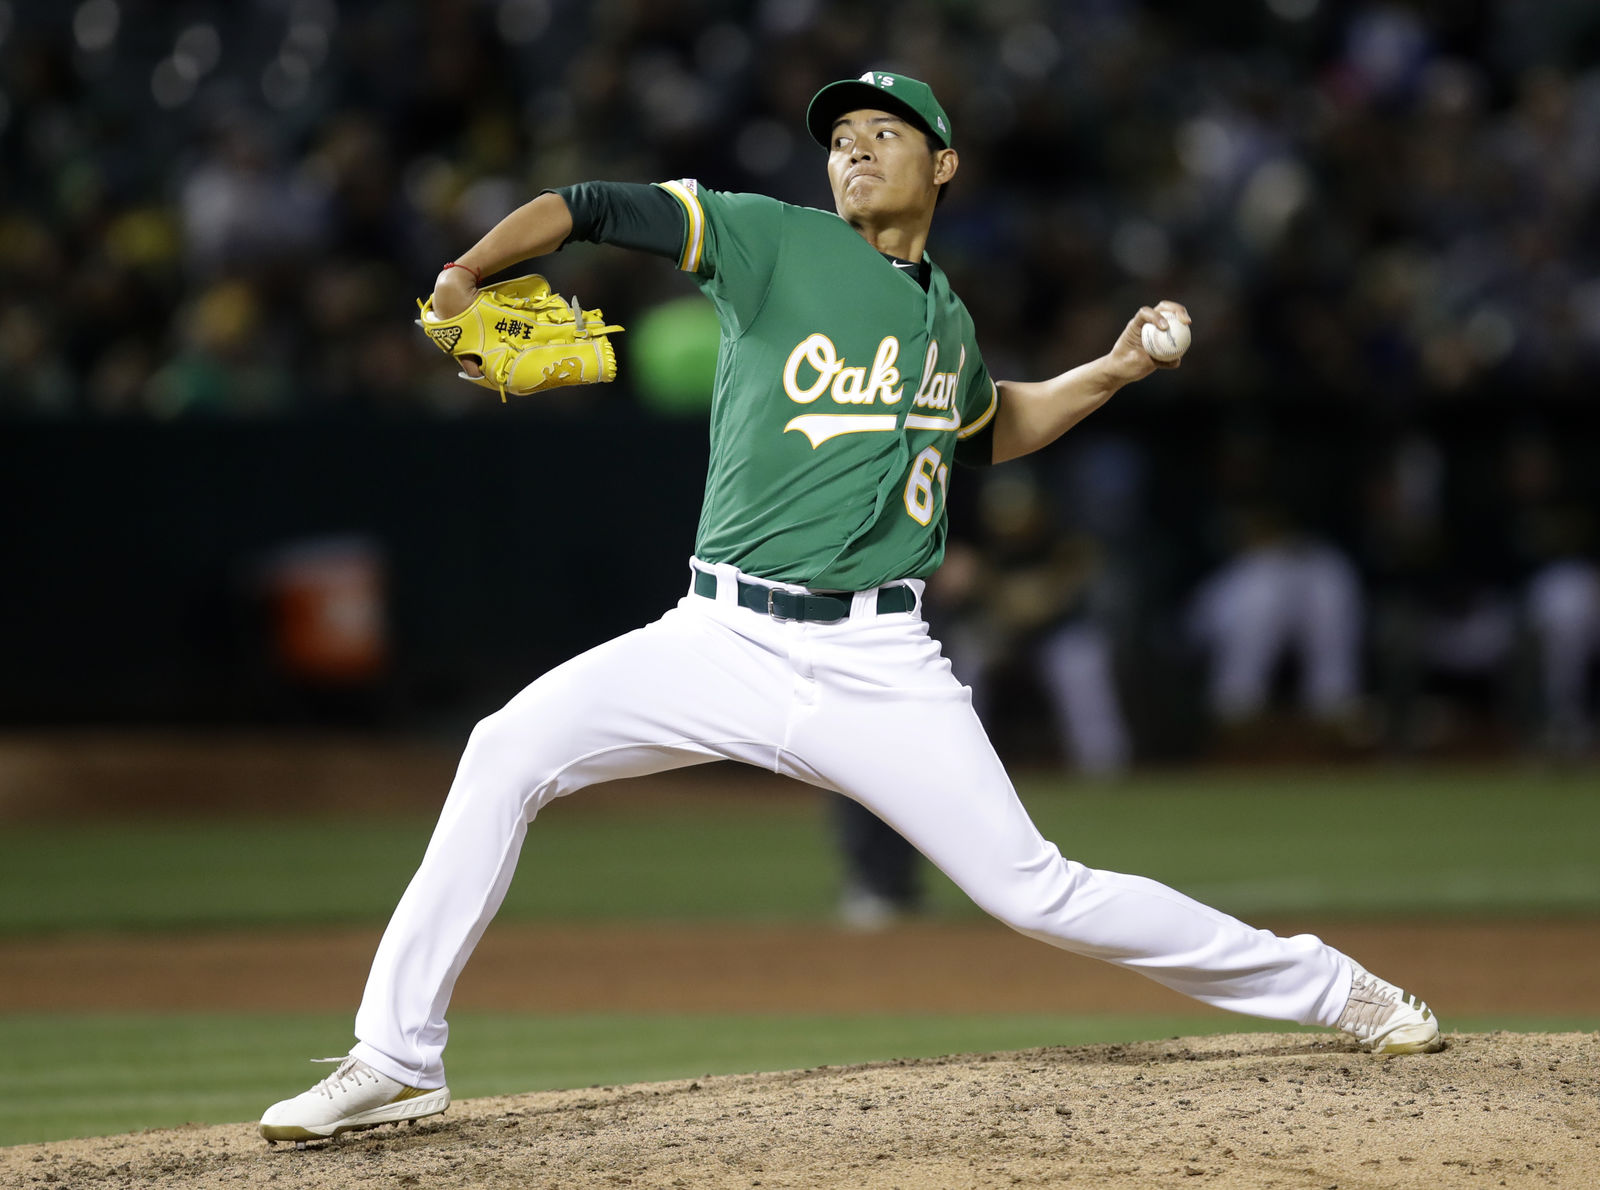 Oakland Athletics pitcher Wei-Chung Wang works against the Seattle Mariners during the seventh inning of a baseball game Friday, June 14, 2019, in Oakland, Calif. (AP Photo/Ben Margot)